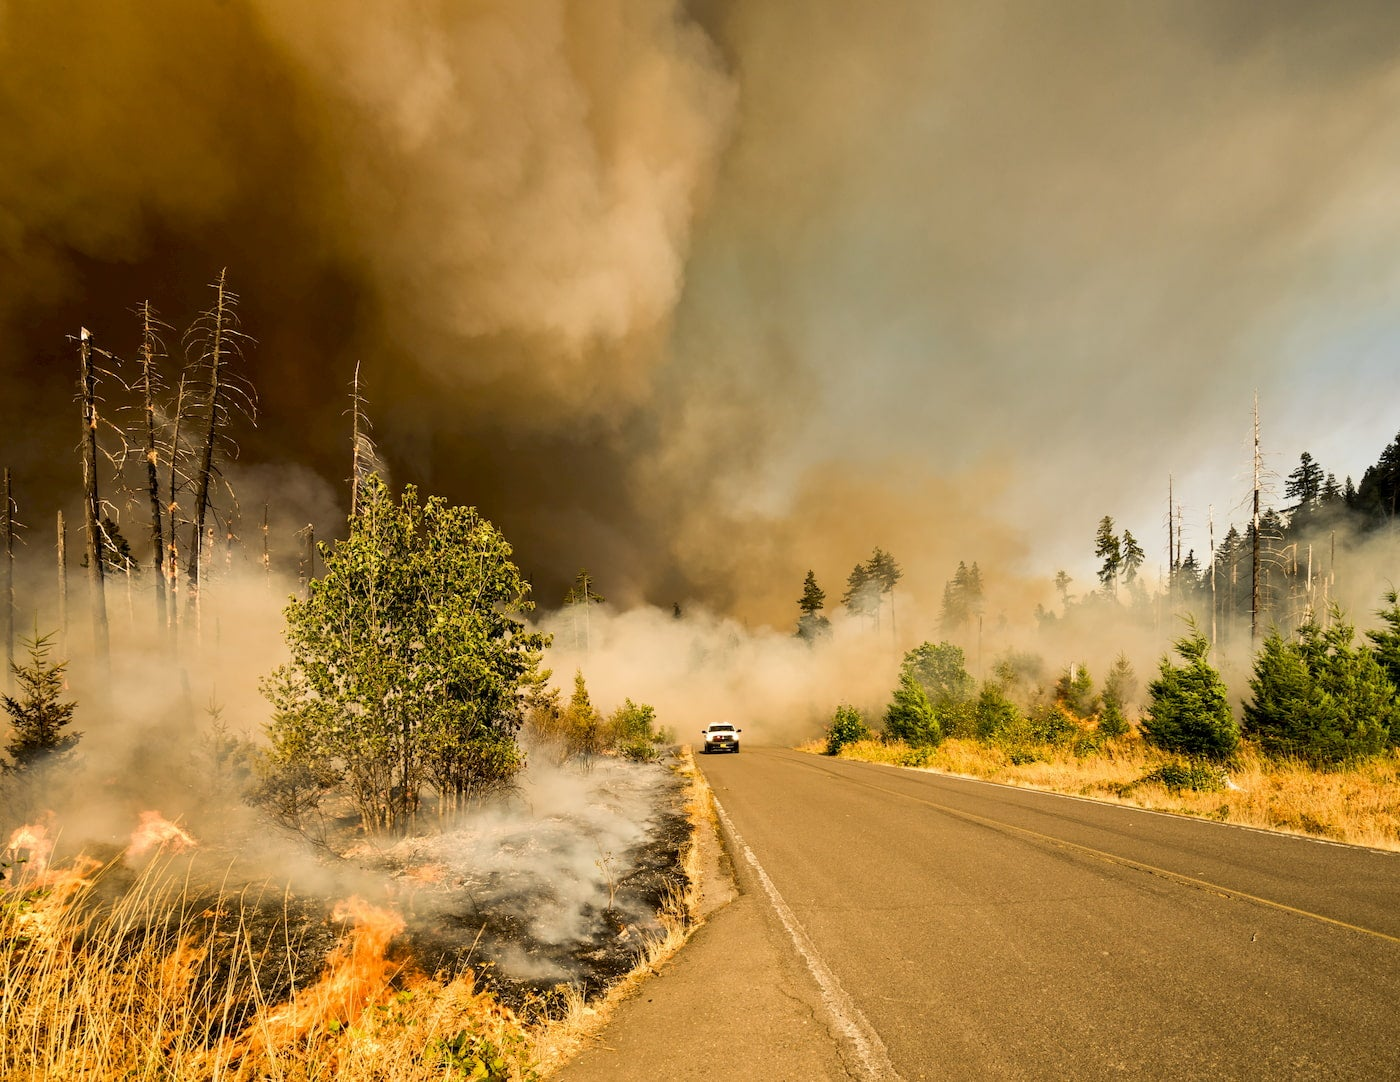 Camping closures as wildfires rage on the west coast. Wildfire cloud above a road in Oregon.